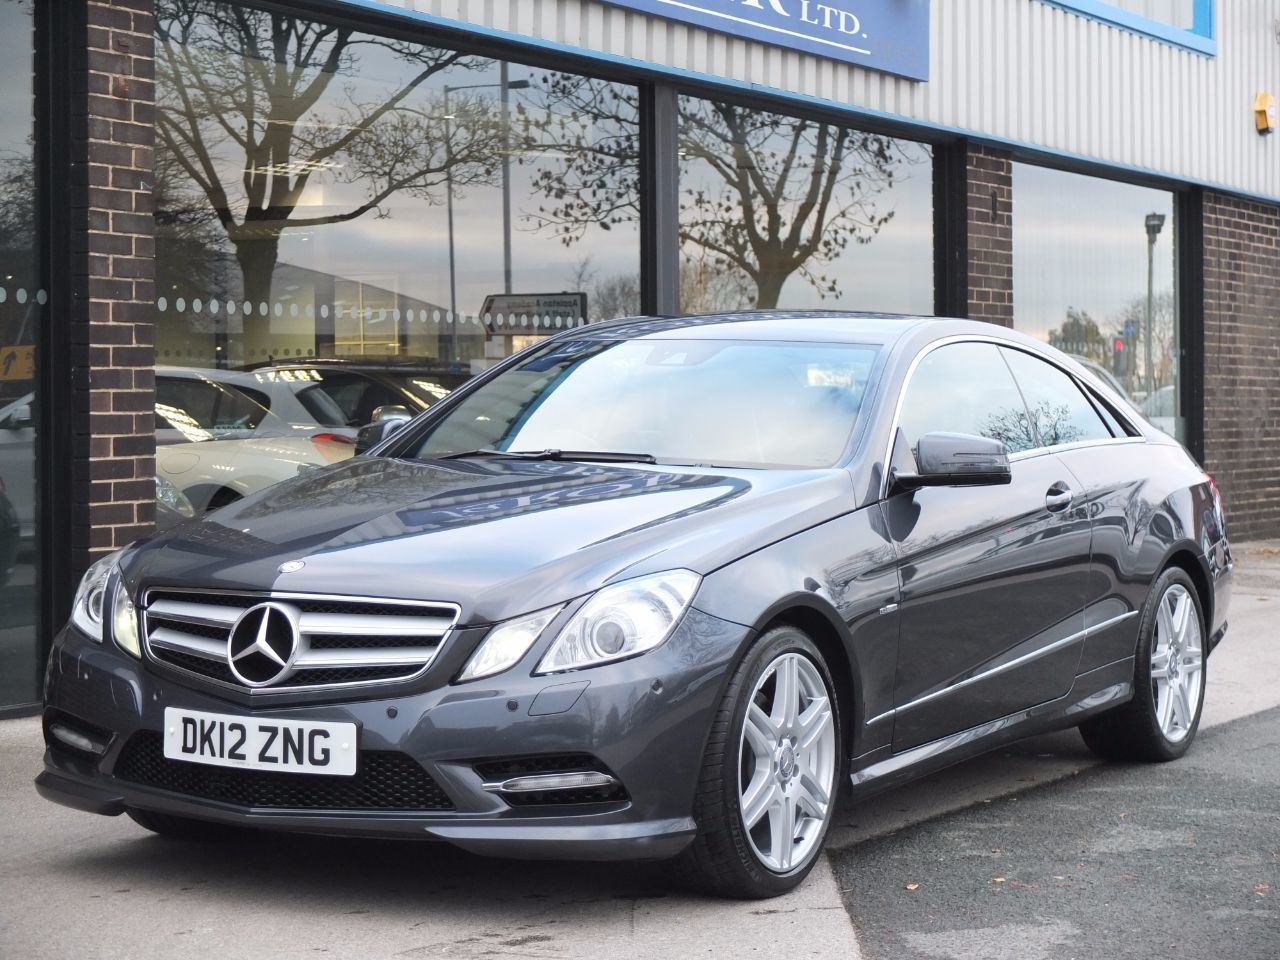 second hand mercedes benz e class e220 cdi blueefficiency sport coupe auto for sale in bradford. Black Bedroom Furniture Sets. Home Design Ideas